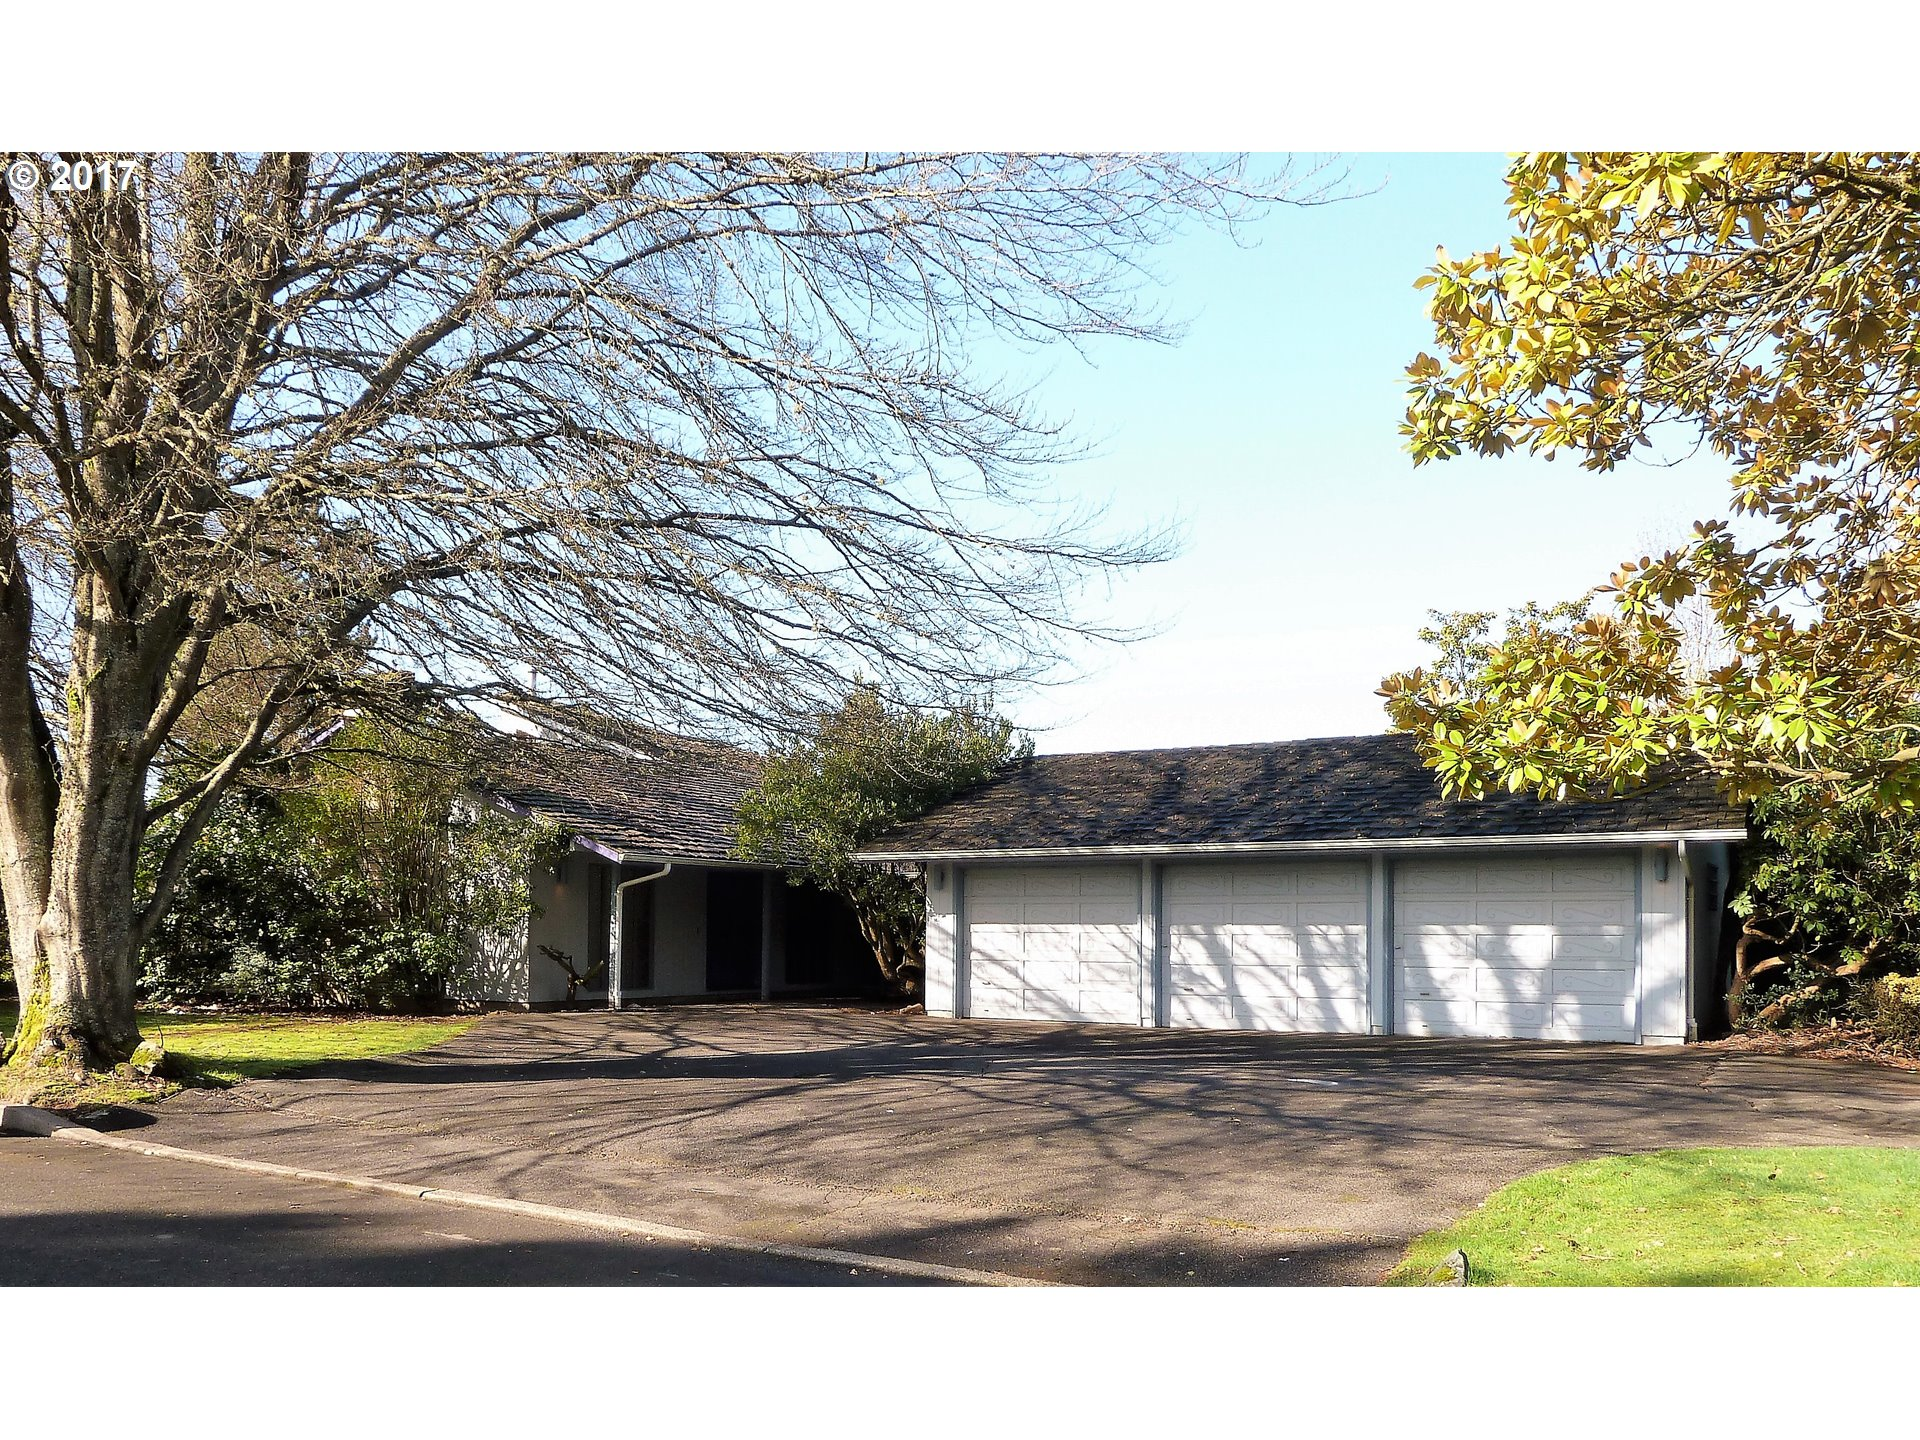 2315 NW 88TH ST, Vancouver, WA 98665